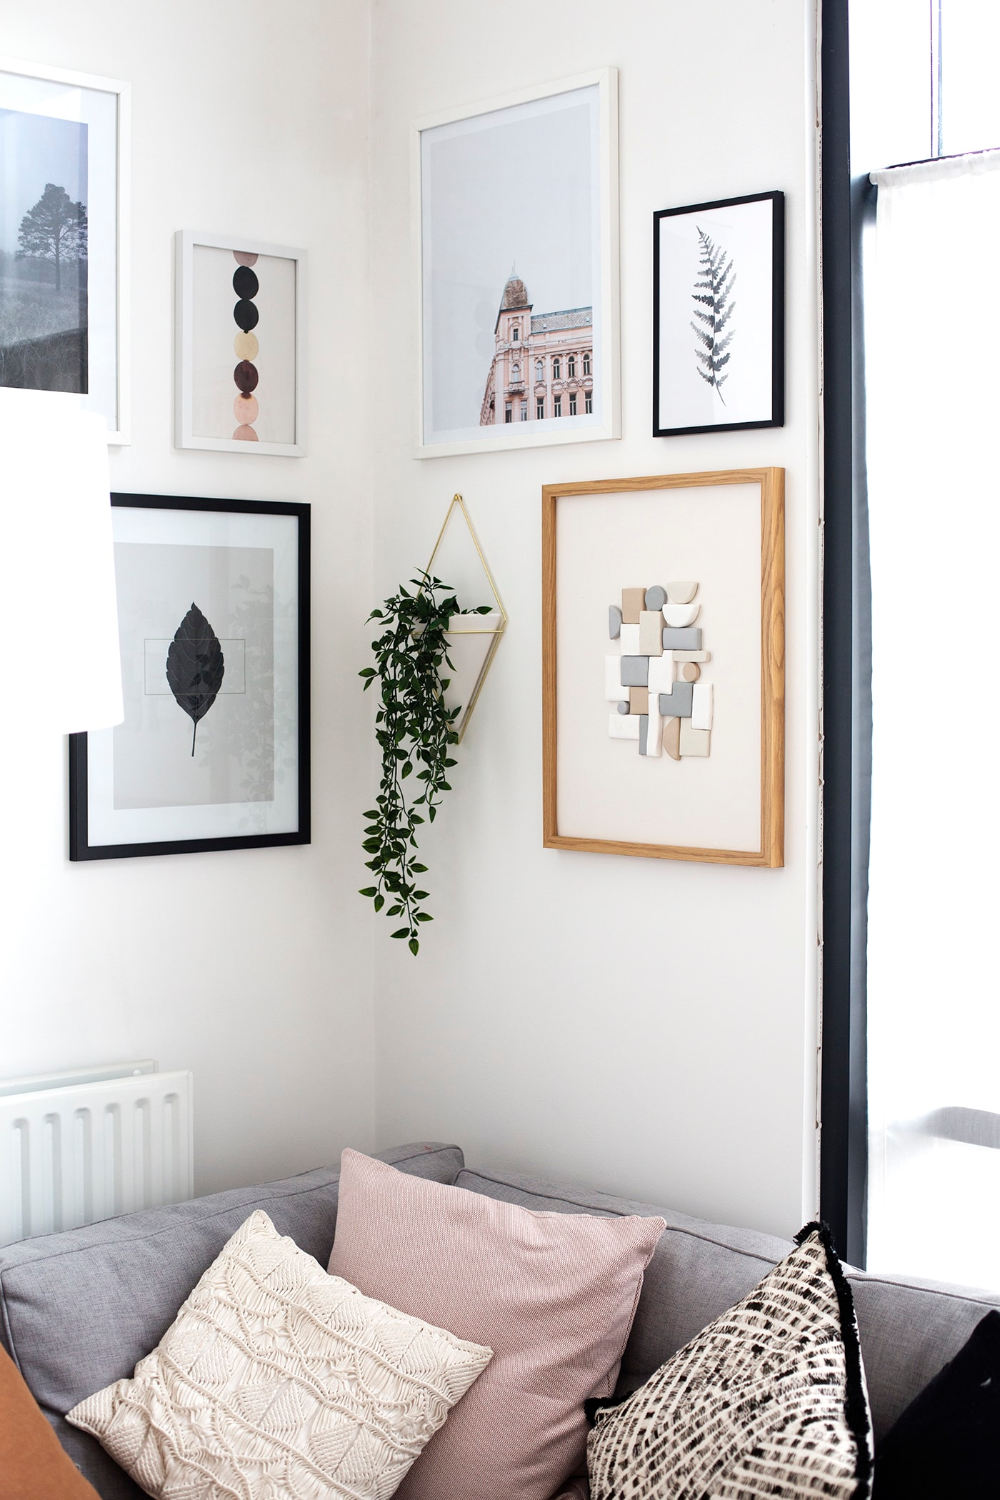 How To Style A Gallery Wall The Lovely Drawer In 2020 Wall Decor Bedroom Gallery Wall Bedroom Gallery Wall Inspiration